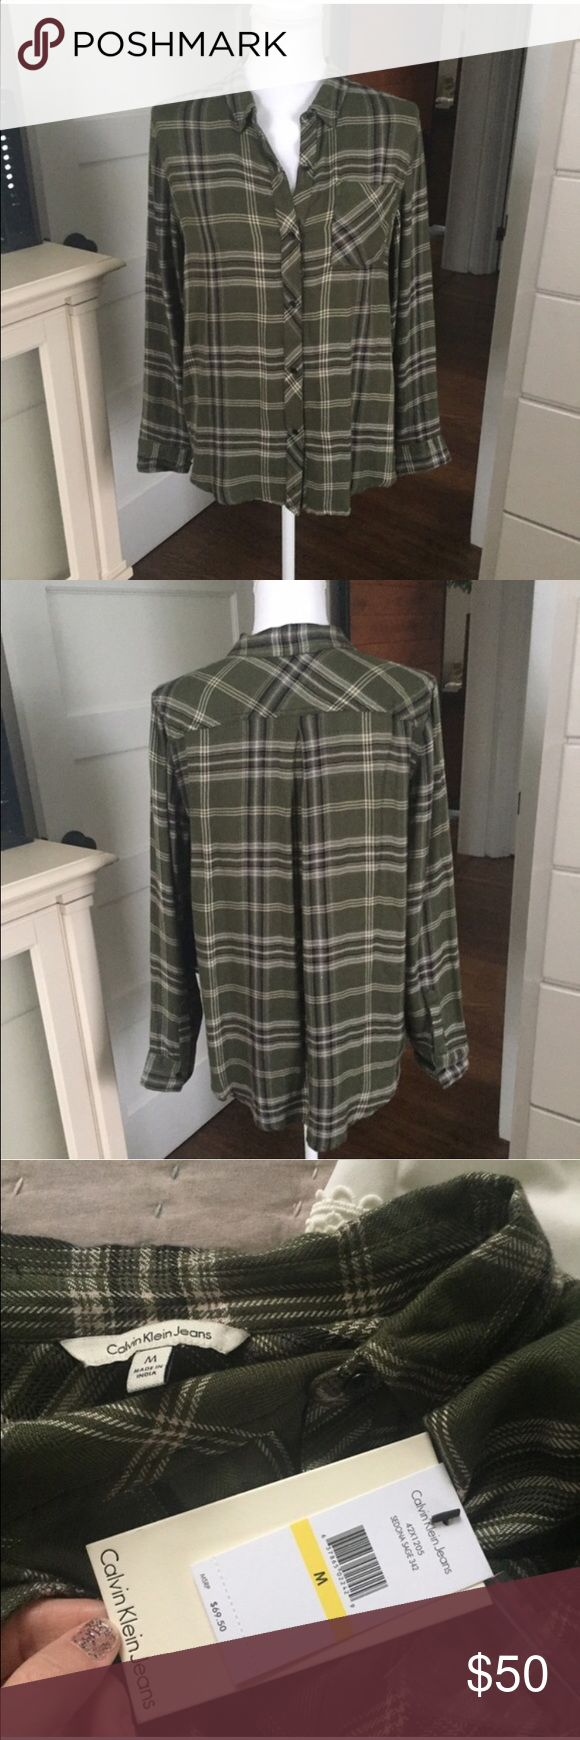 NWT Calvin Klein Jeans flannel medium-cute & comfy NWT Calvin Klein Jeans flannel medium-super cute and comfy! A little longer in the back so it looks really cute with leggings or skinny jeans!! Calvin Klein Jeans Tops